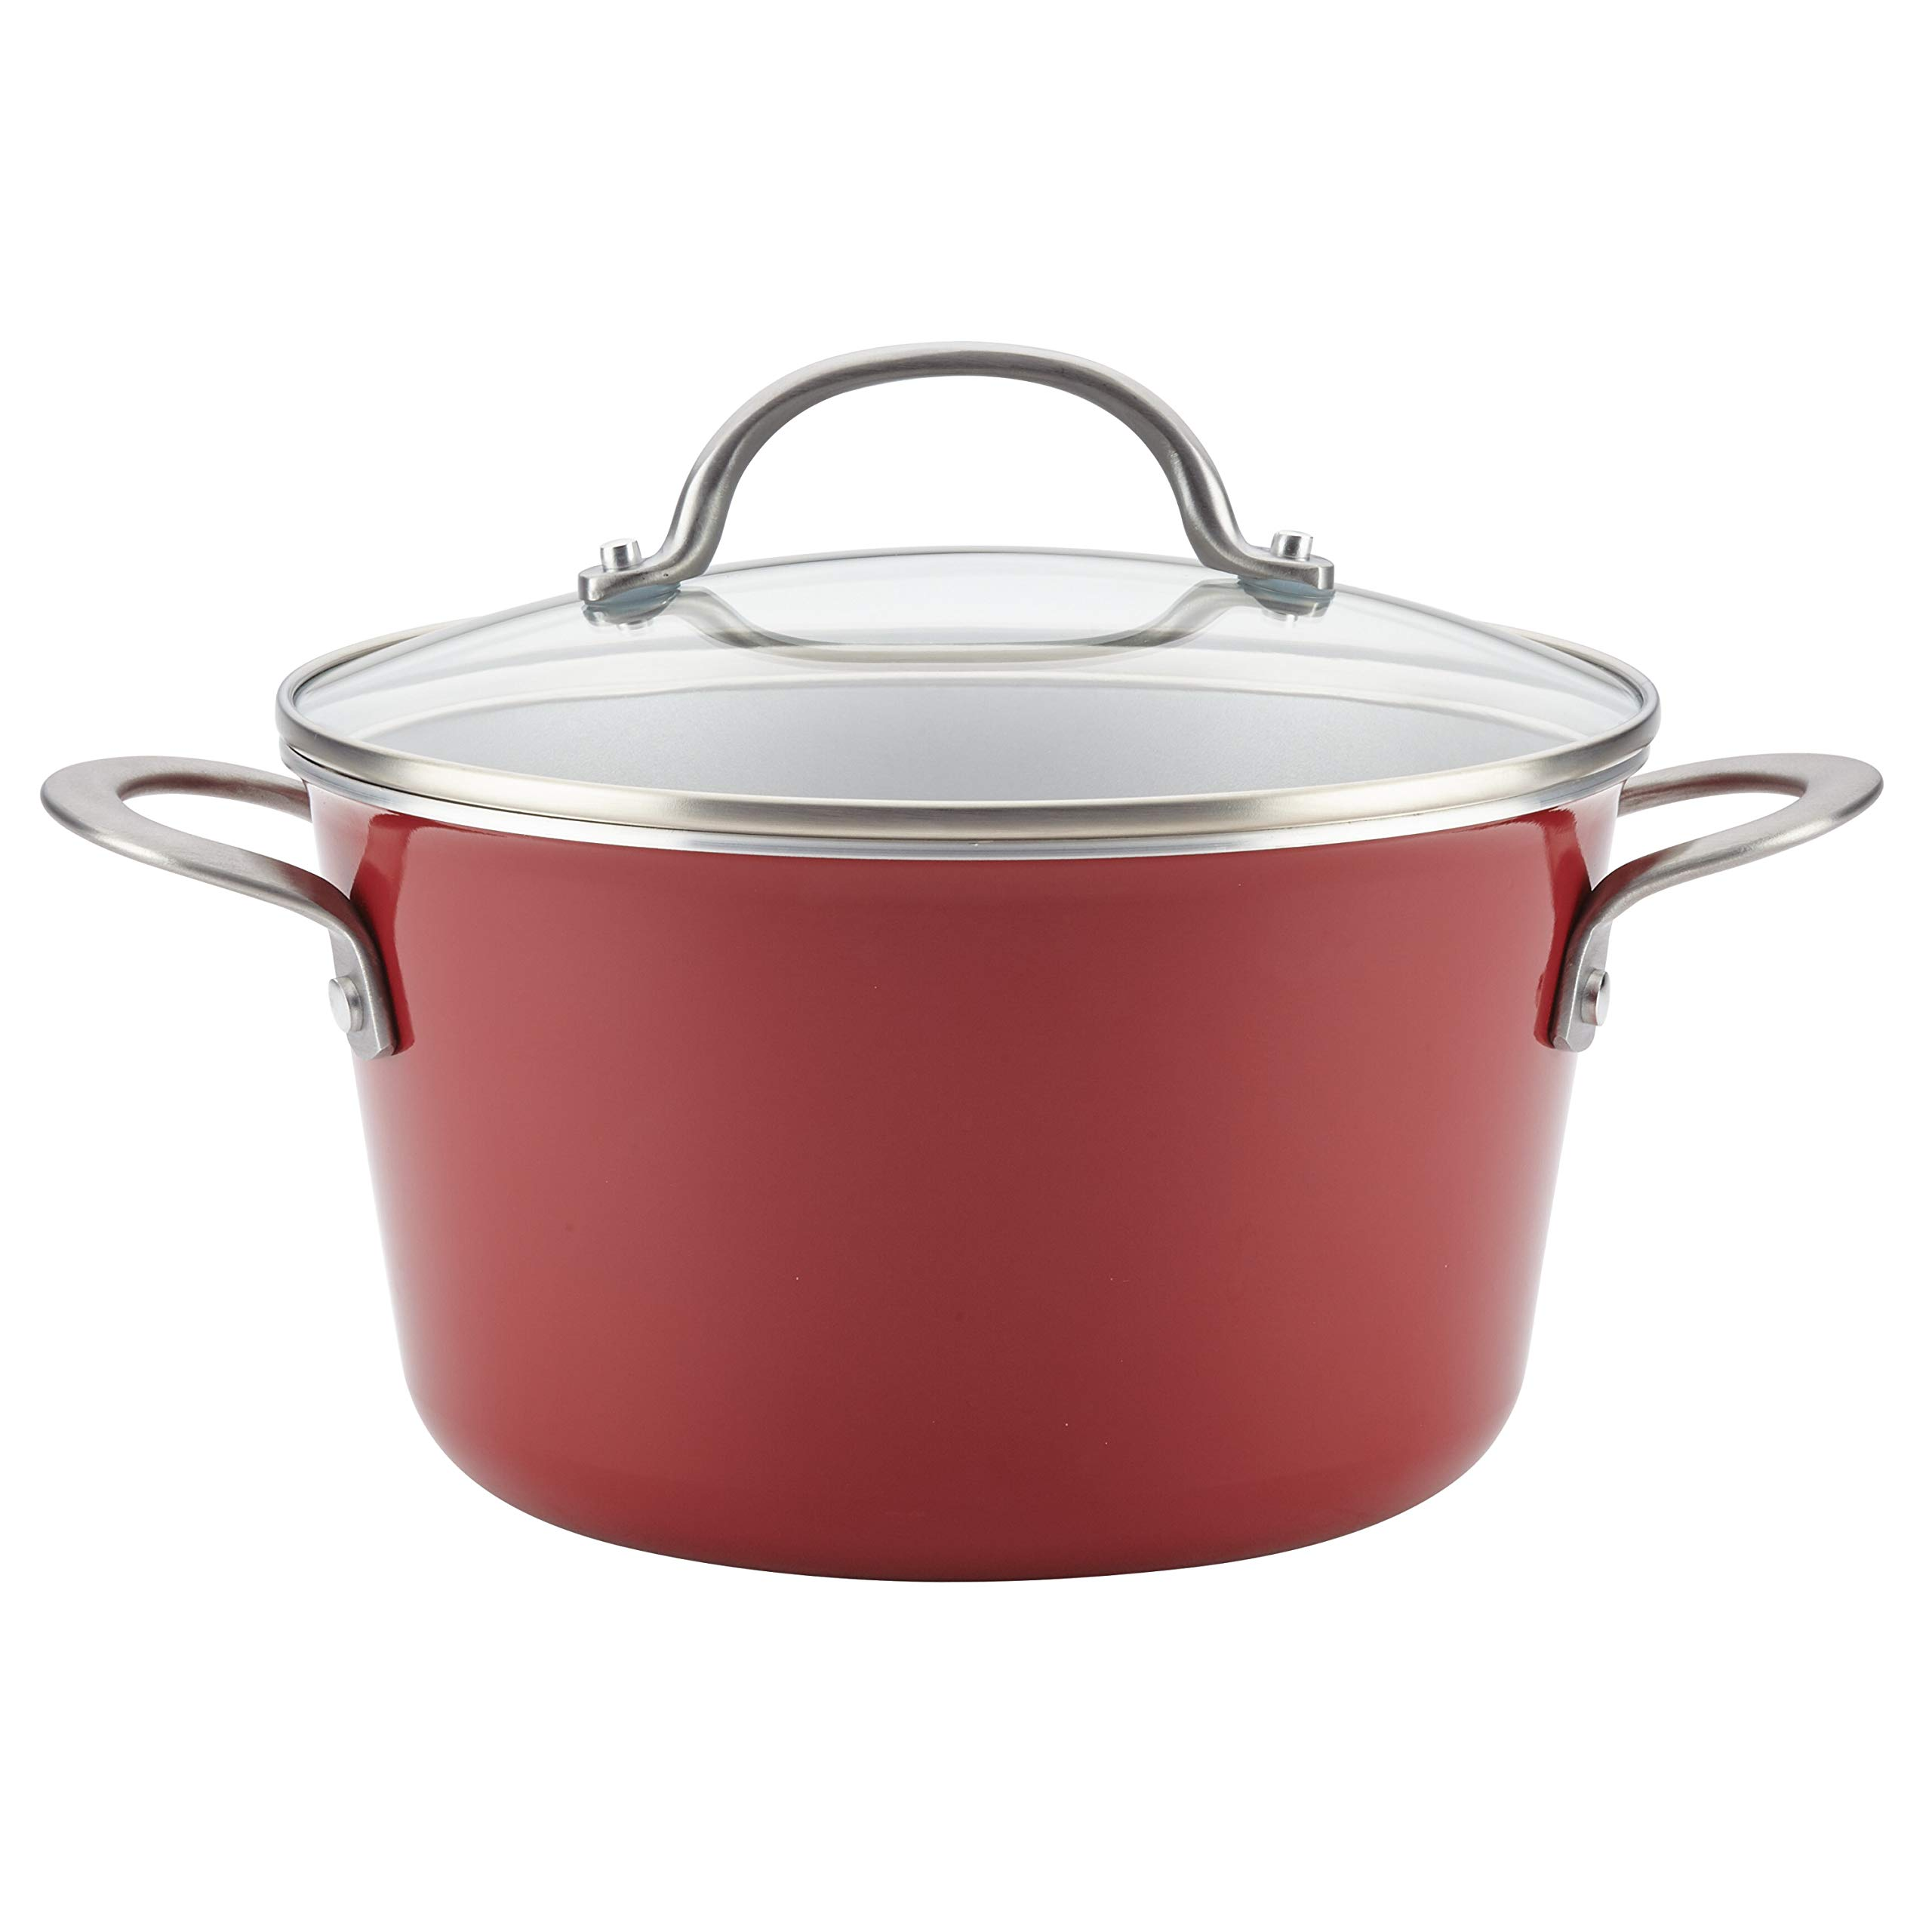 Ayesha Curry 10744 Home Collection Nonstick Sauce Pan/Saucepan with Lid, 4.5 Quart, Red